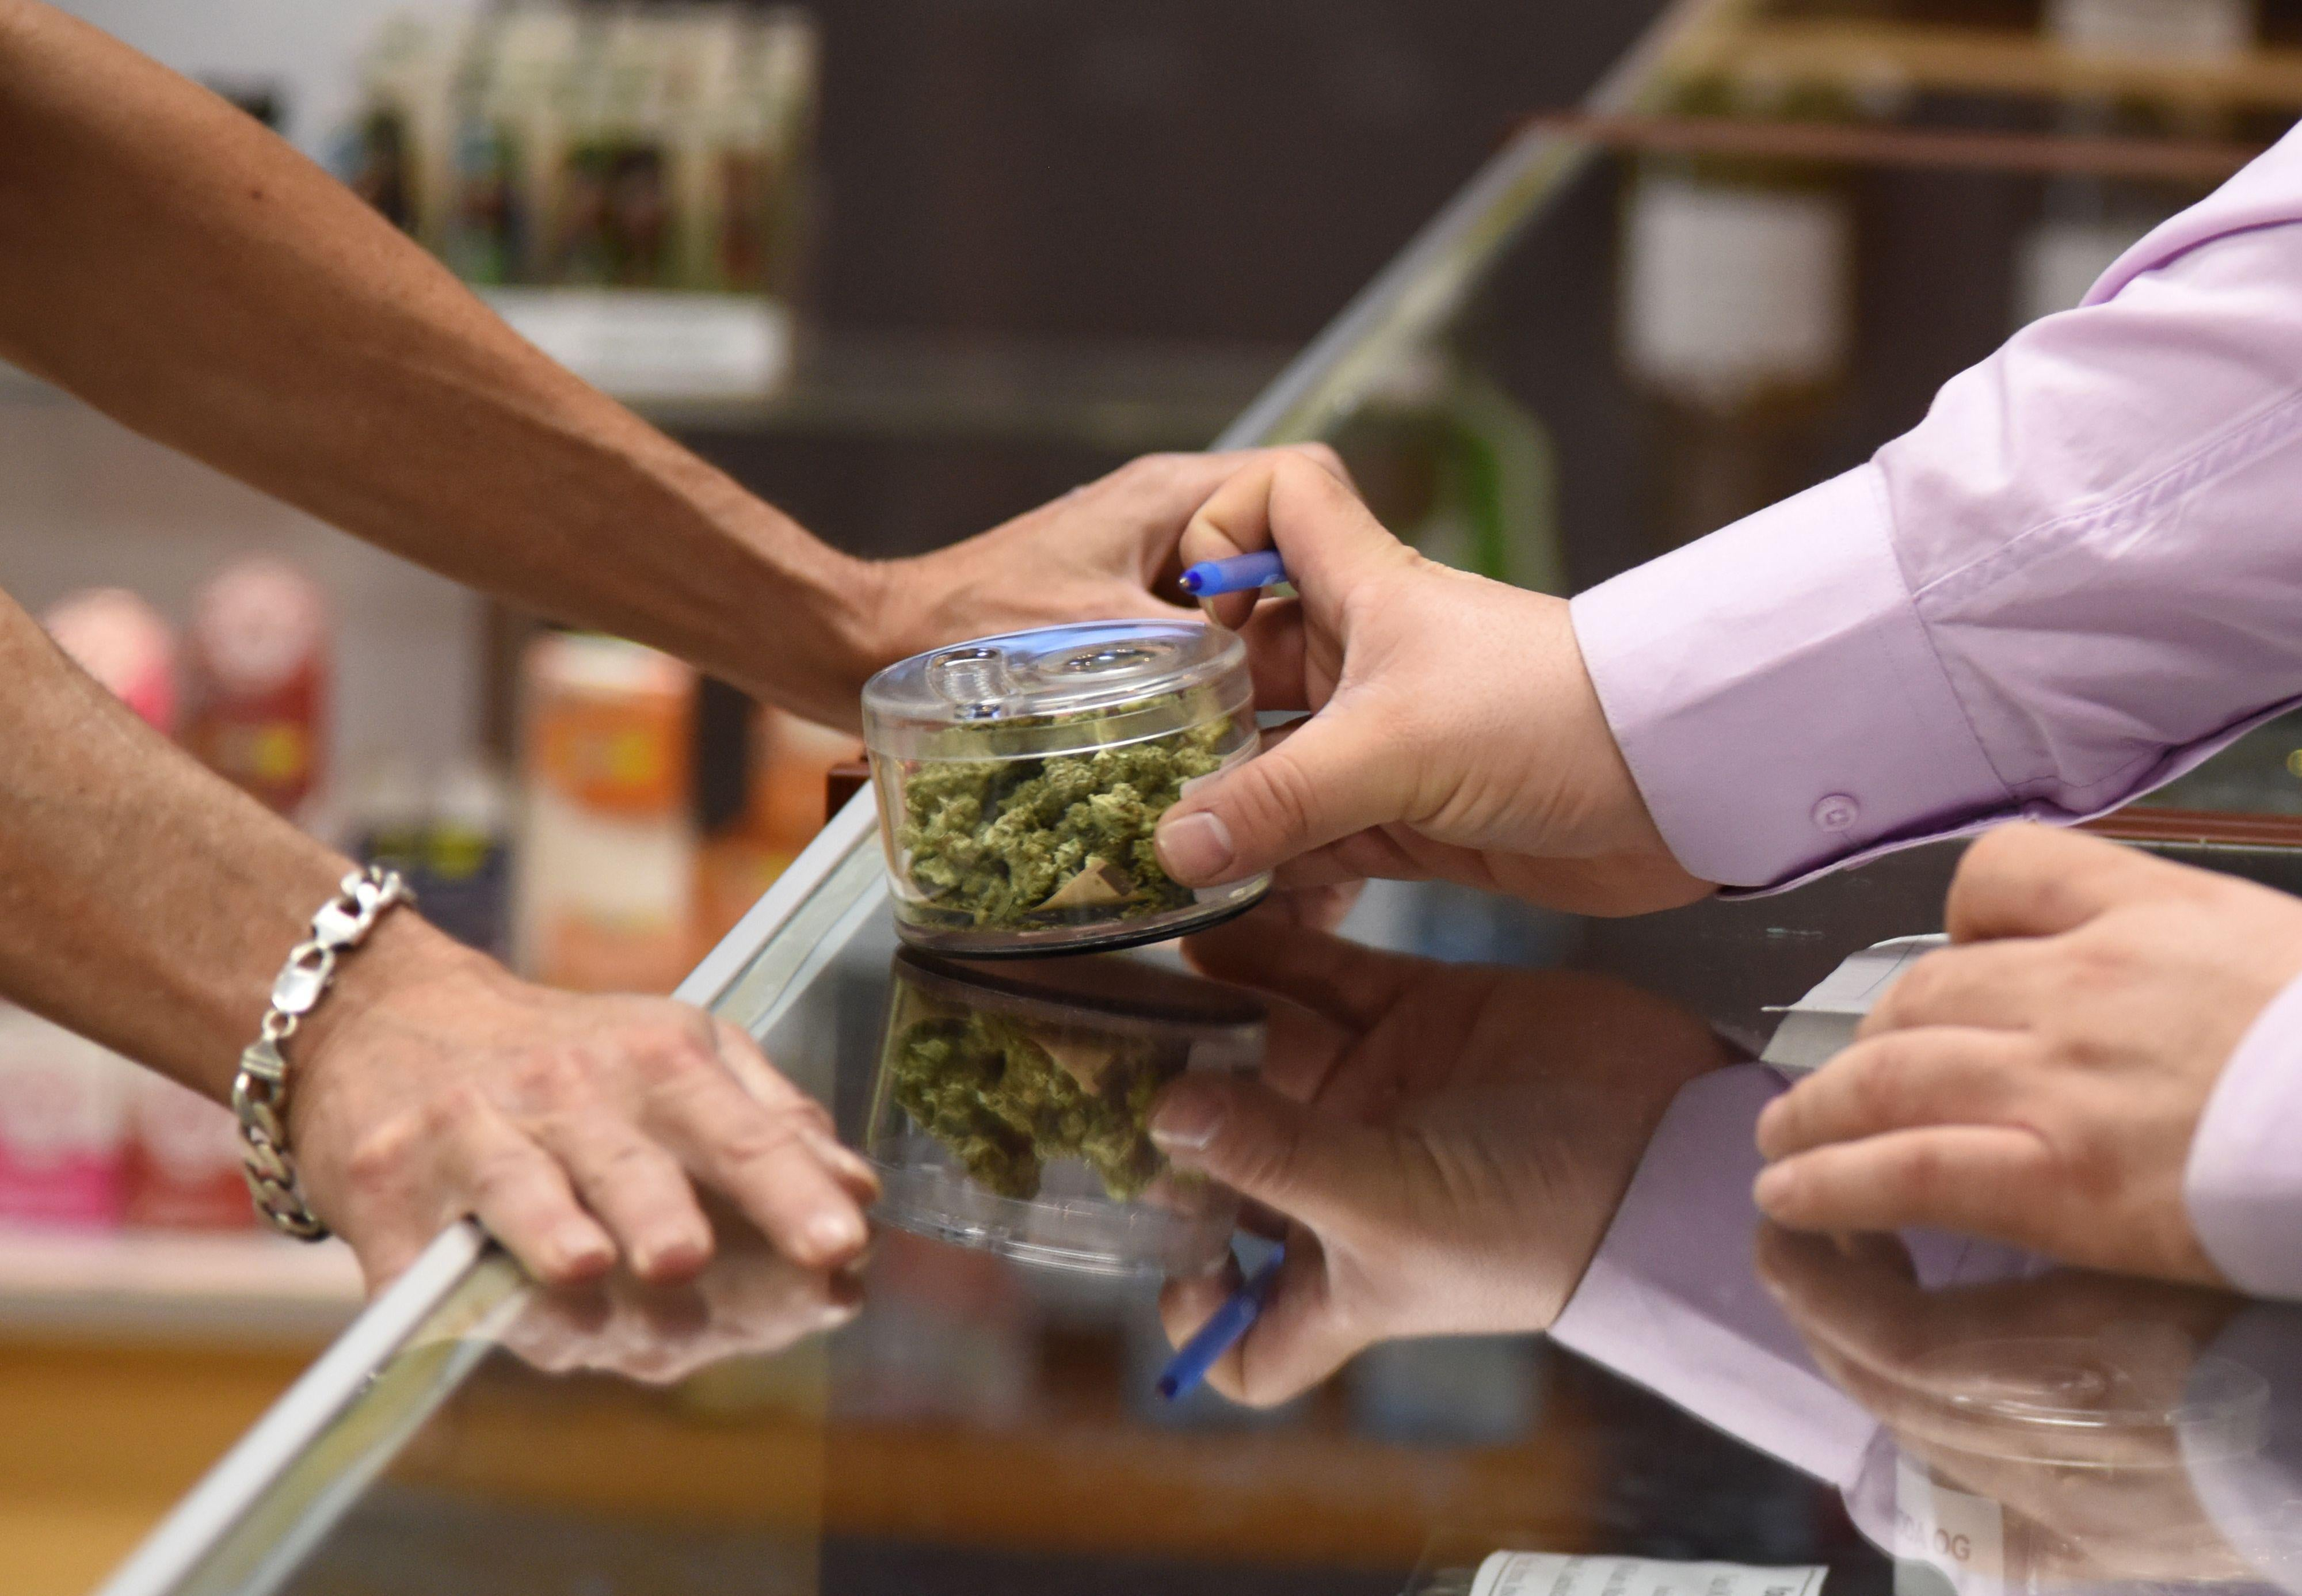 A budtender (right) shows cannabis buds to a customer at the Green Pearl Organics dispensary on the first day of legal recreational marijuana sales in California, January 1, 2018 at the Green Pearl Organics marijuana dispensary in Desert Hot Springs, California.